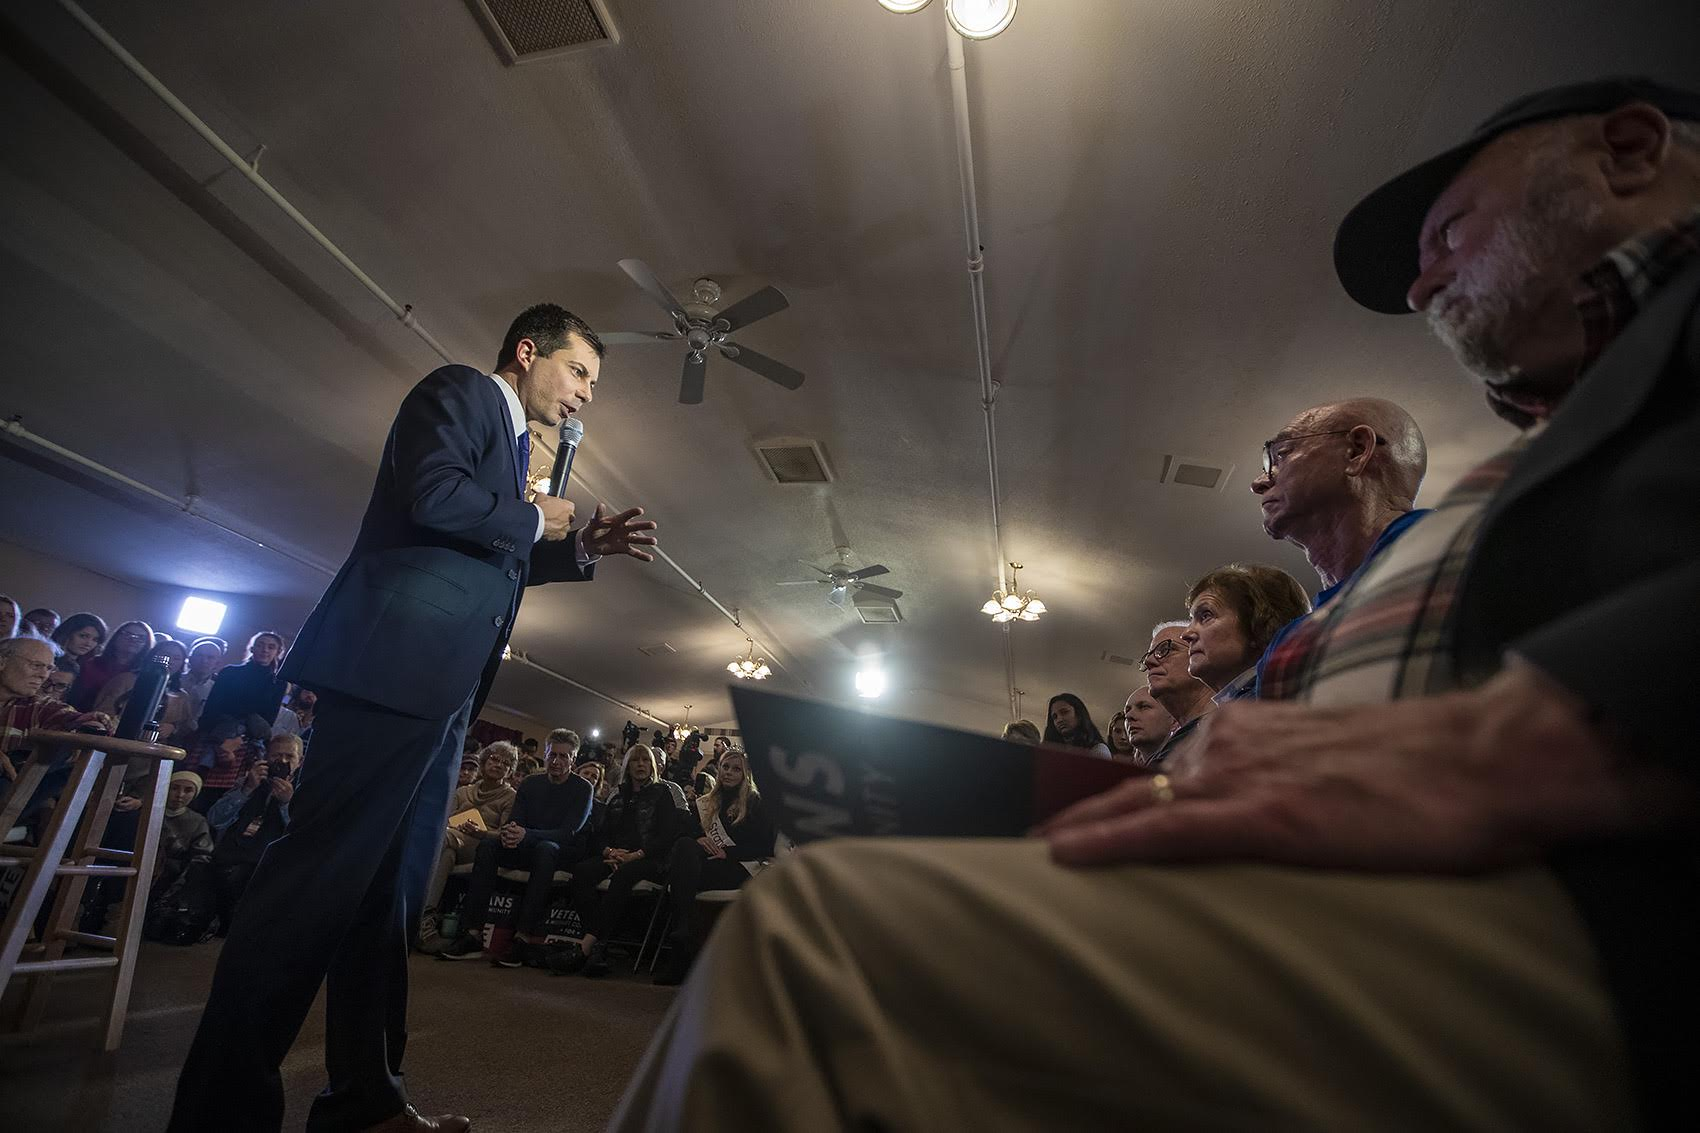 Presidential candidate Pete Buttigieg speaks to a room full of veterans at the Merrimack American Legion Post 98 in Merrimack, N.H. (Jesse Costa/WBUR)